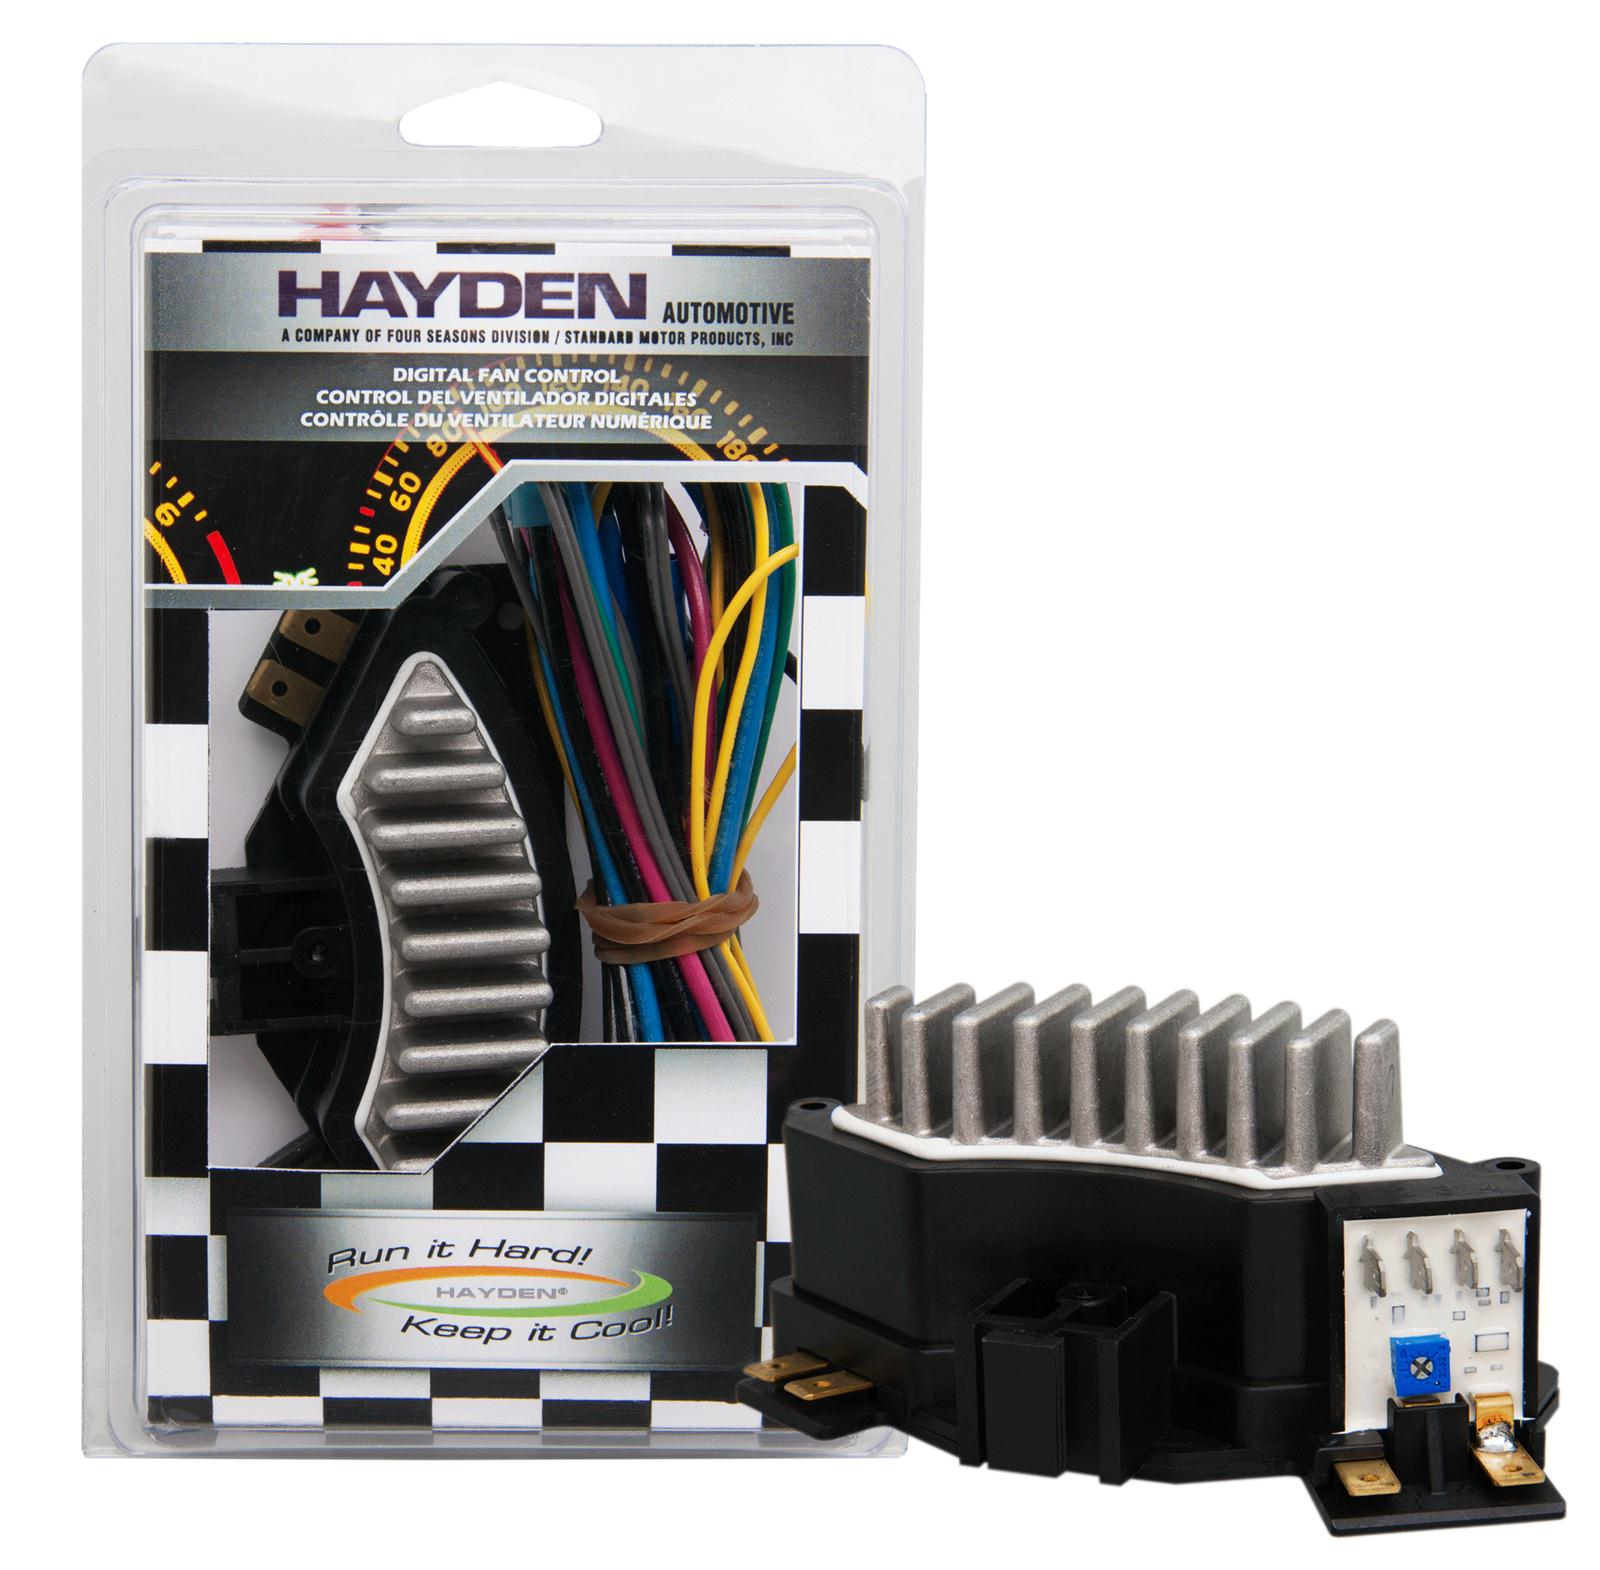 hight resolution of hayden digital fan controllers 3655 free shipping on orders over 99 at summit racing